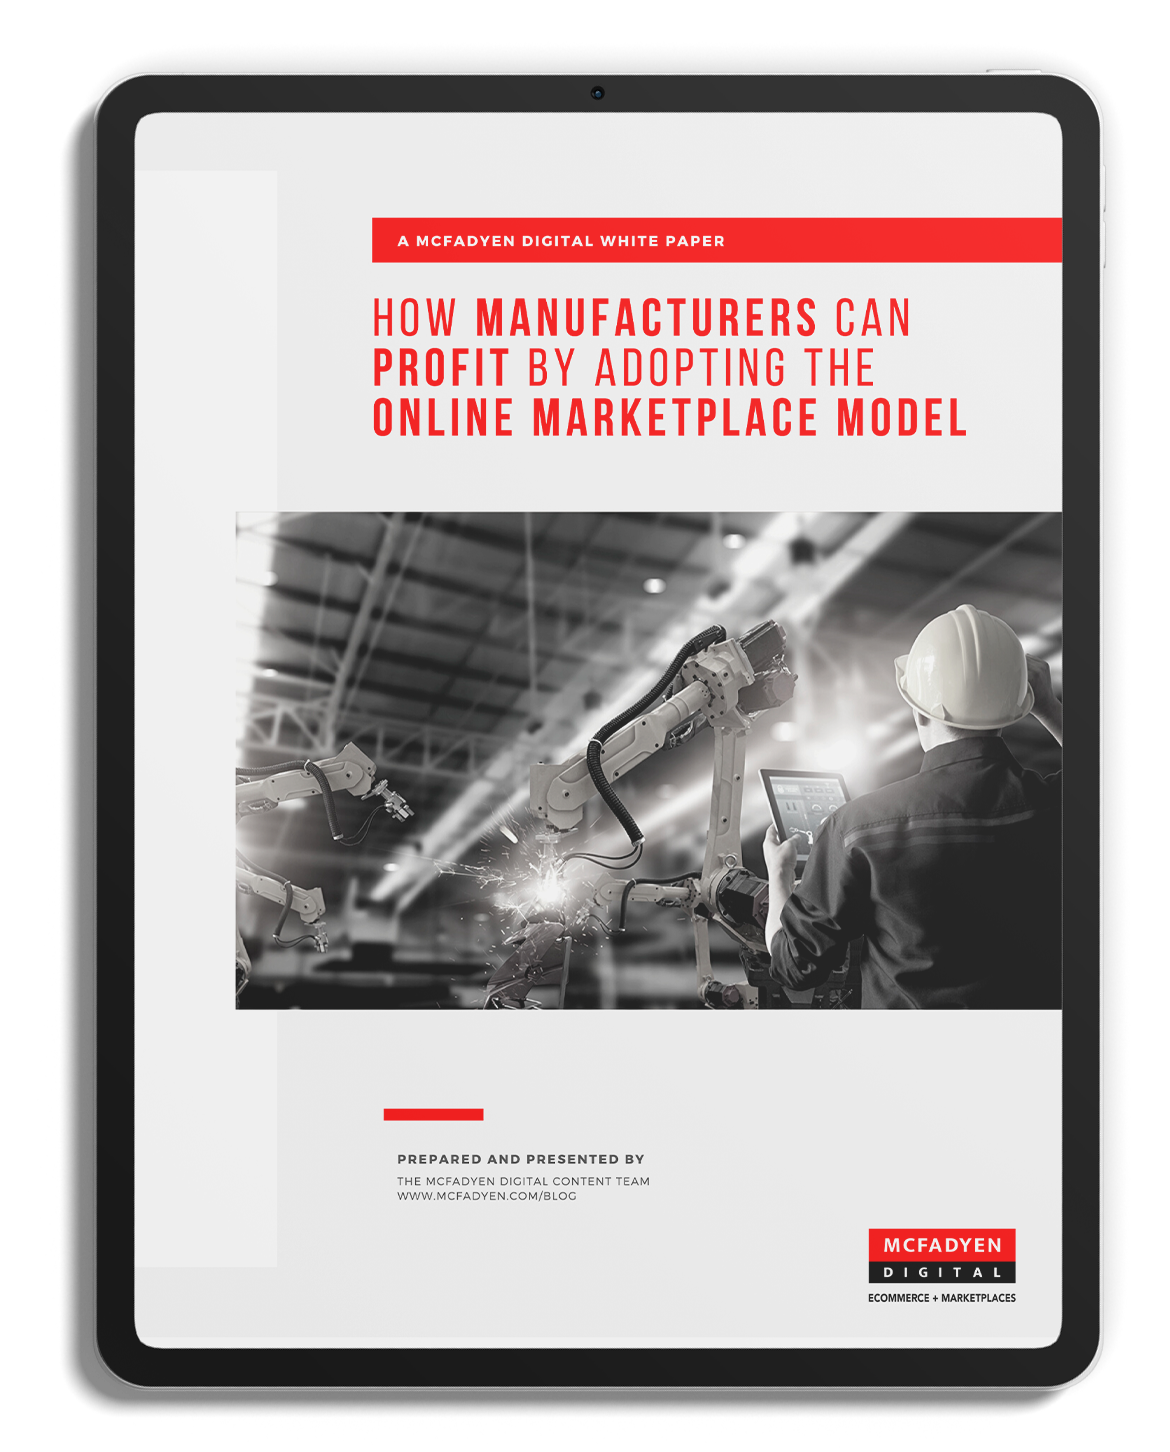 How Manufacturers Can Profit from the Online Marketplace Model